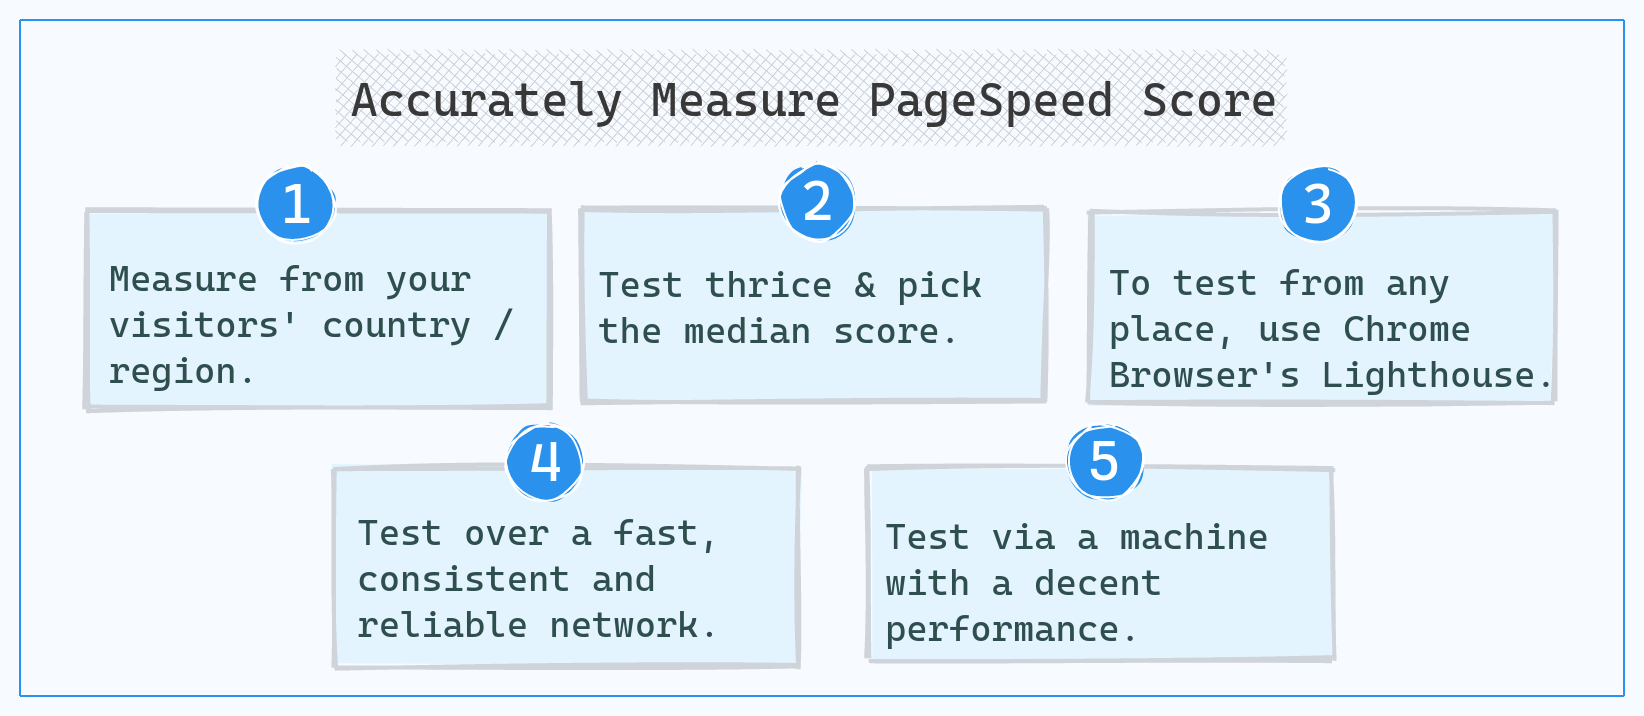 Accurately measure your PageSpeed Score